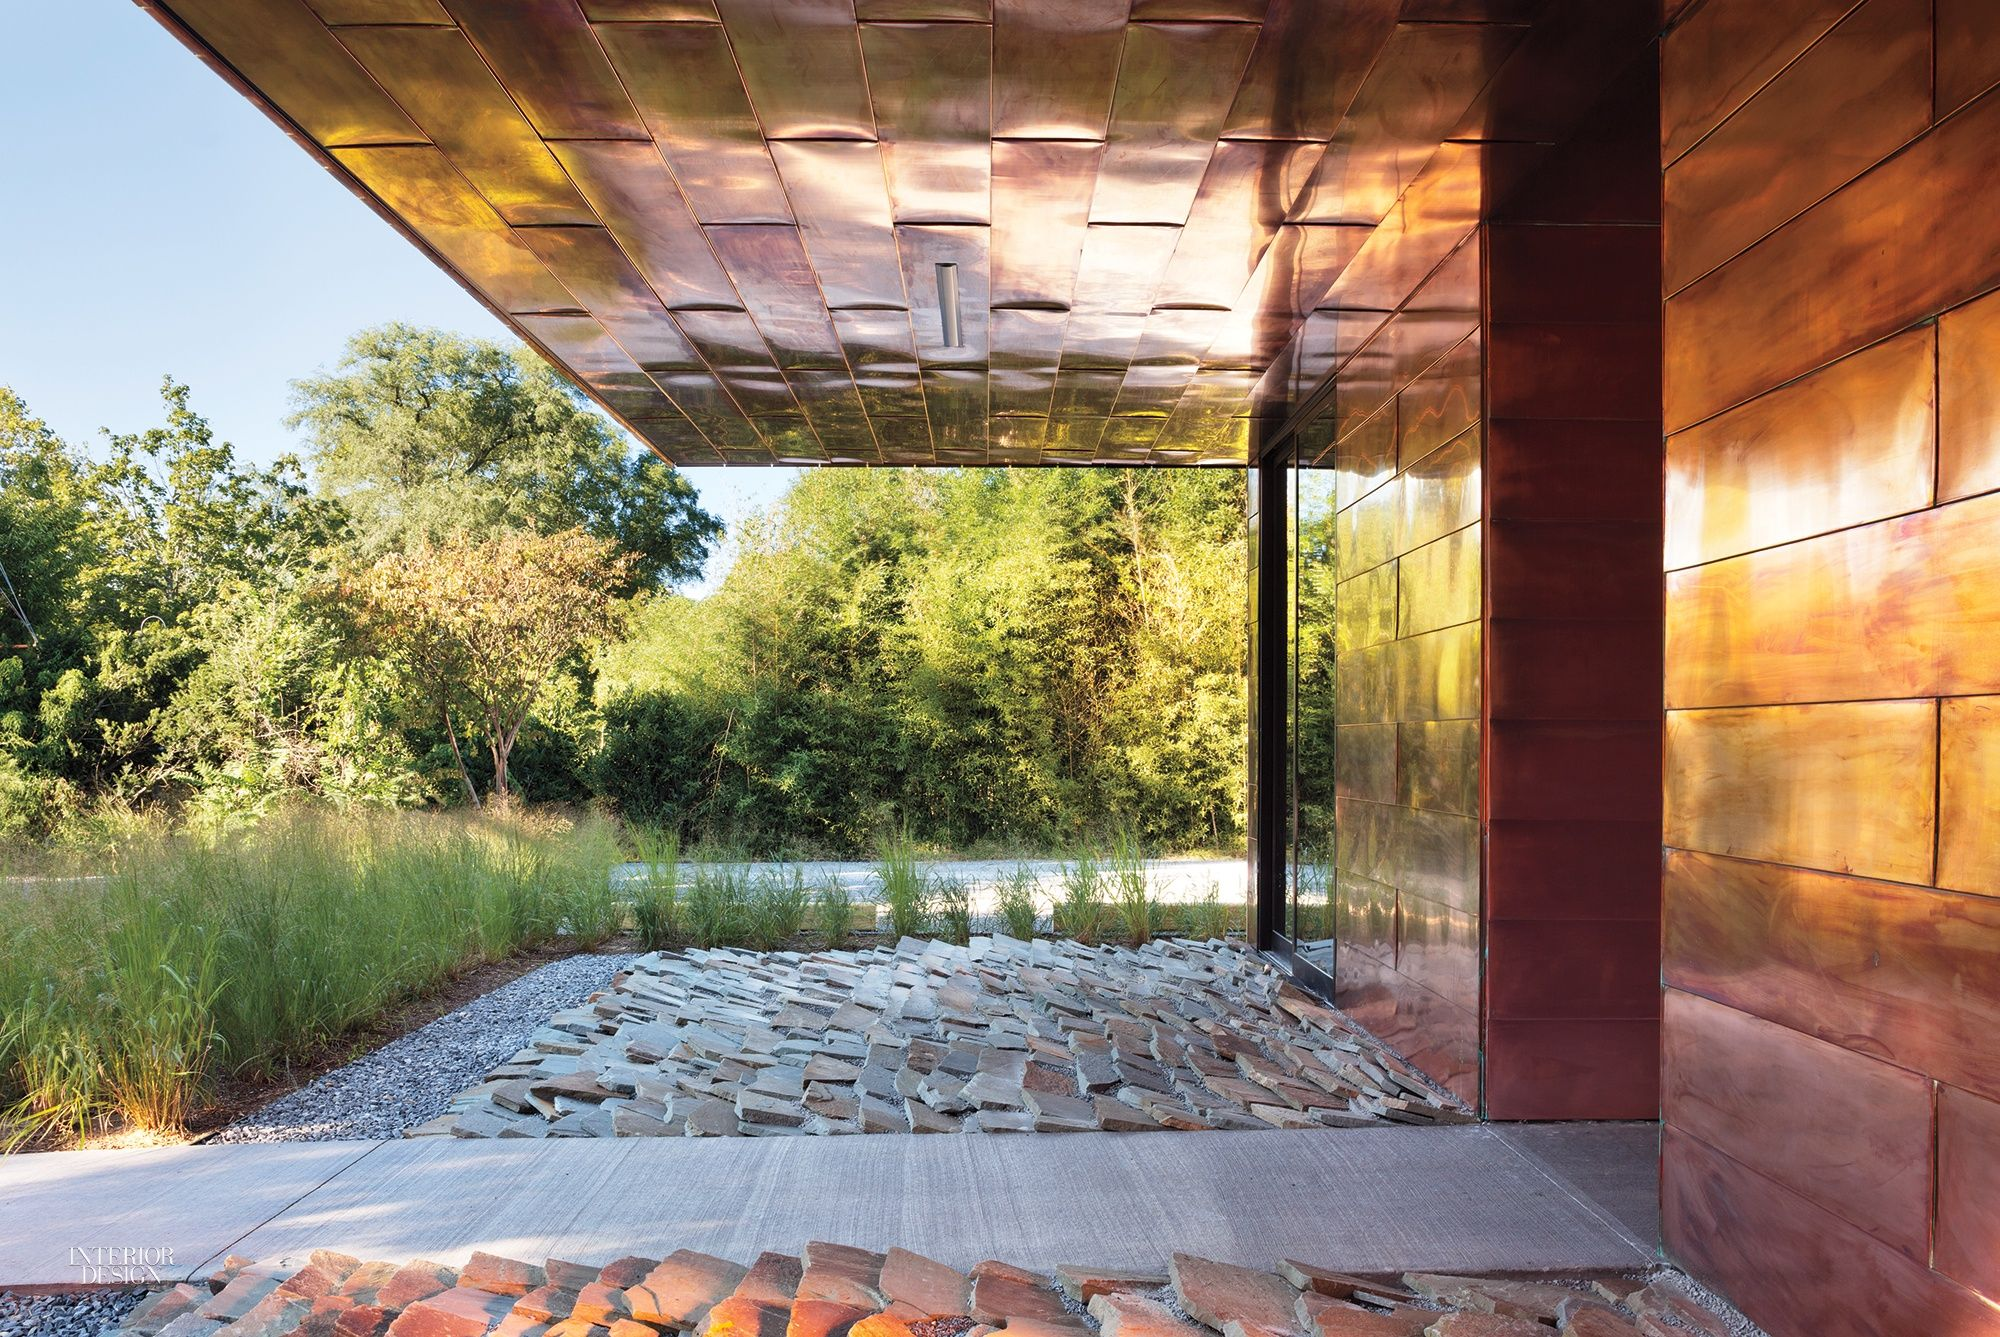 Bates Masi S Office In East Hampton Now A True Extension Of The